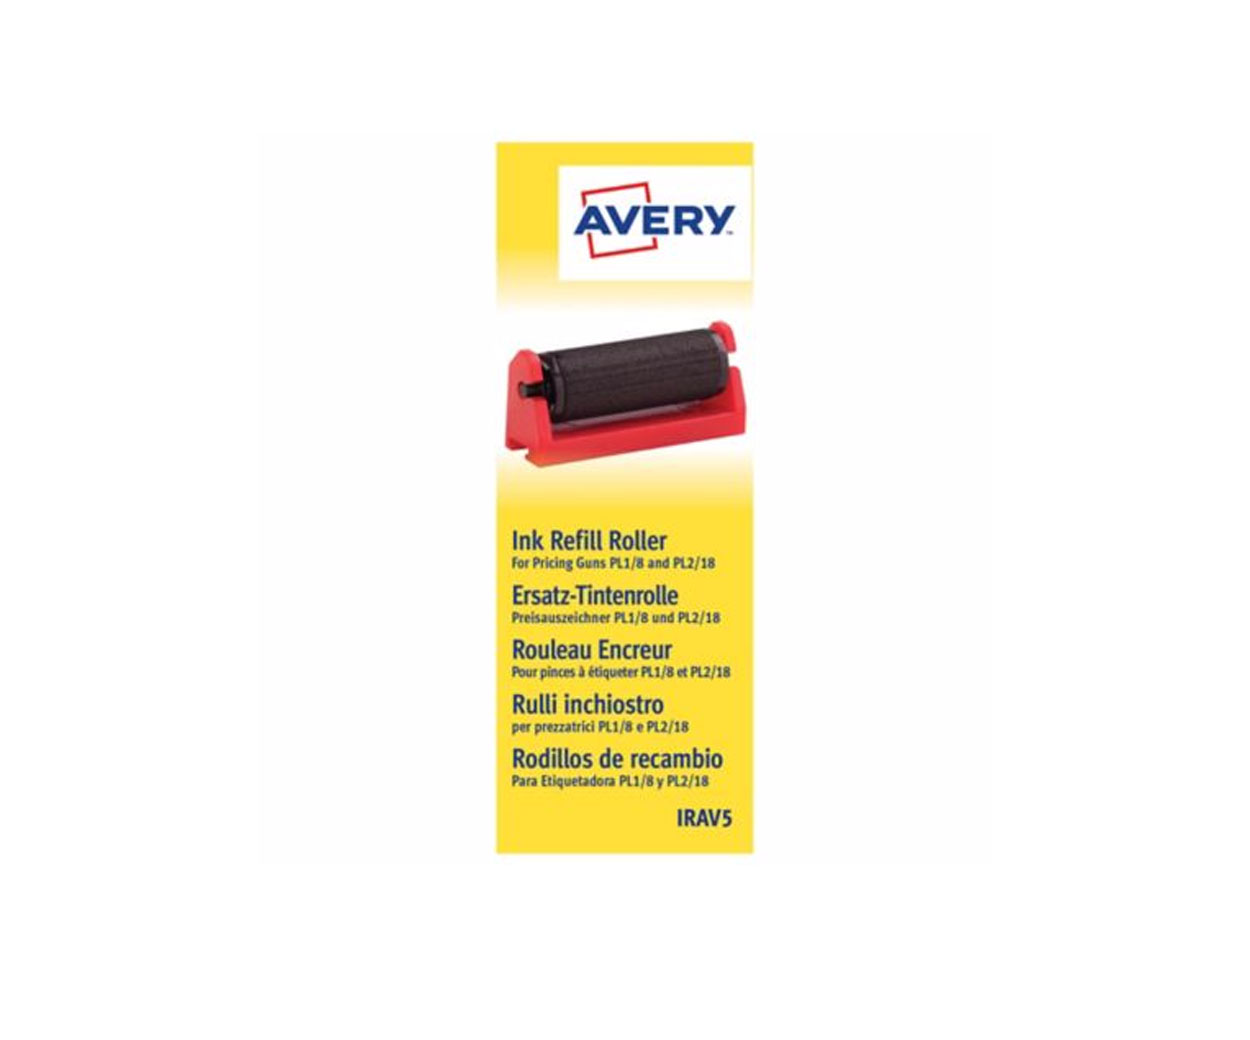 Avery Ink Rollers